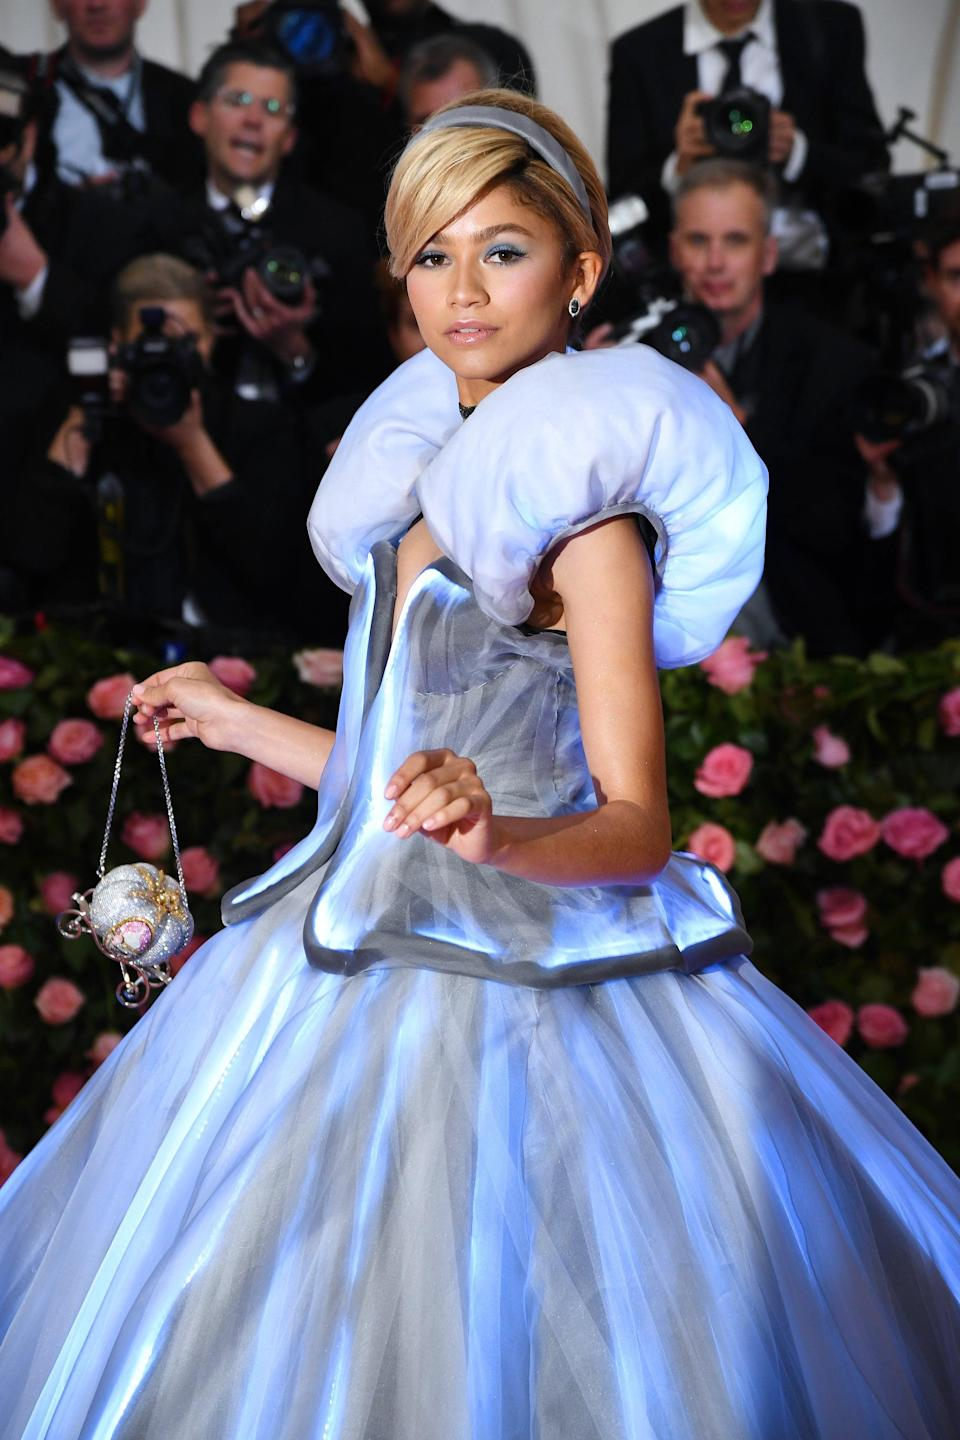 """<p><a class=""""link rapid-noclick-resp"""" href=""""https://www.popsugar.co.uk/Zendaya"""" rel=""""nofollow noopener"""" target=""""_blank"""" data-ylk=""""slk:Zendaya"""">Zendaya</a> went for a more overt homage when she <a href=""""https://www.popsugar.com/fashion/Zendaya-Cinderella-Dress-2019-Met-Gala-46119928"""" class=""""link rapid-noclick-resp"""" rel=""""nofollow noopener"""" target=""""_blank"""" data-ylk=""""slk:dressed like Cinderella"""">dressed like Cinderella</a> to attend the 2019 Met Gala. The baby blue Tommy Hilfiger gown lit up as soon as she hit the <a href=""""https://www.popsugar.com/fashion/Met-Gala-Red-Carpet-Dresses-2019-46110280"""" class=""""link rapid-noclick-resp"""" rel=""""nofollow noopener"""" target=""""_blank"""" data-ylk=""""slk:camp-themed red carpet"""">camp-themed red carpet</a>, and a velvet headband, choker necklace, and carriage-shaped purse helped complete the princess look. Law, meanwhile, attended the event as the Fairy Godmother in a fitting move.</p>"""